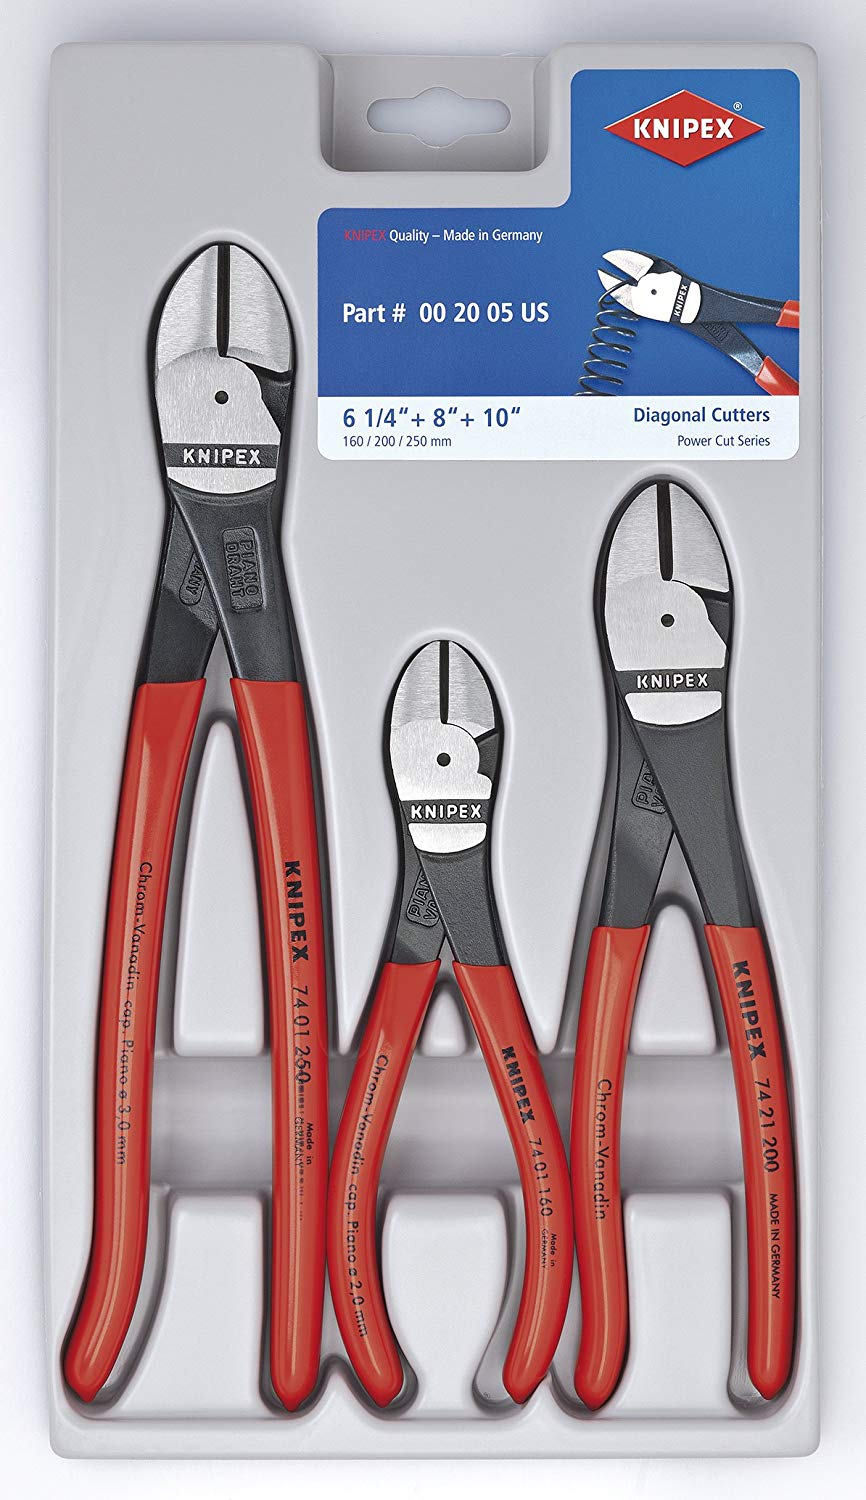 17f5d186123a Get Quotations · KNIPEX Tools Knipex 002005S2 High Leverage Diagonal Cutter  Pliers Tool Set - 3 Piece